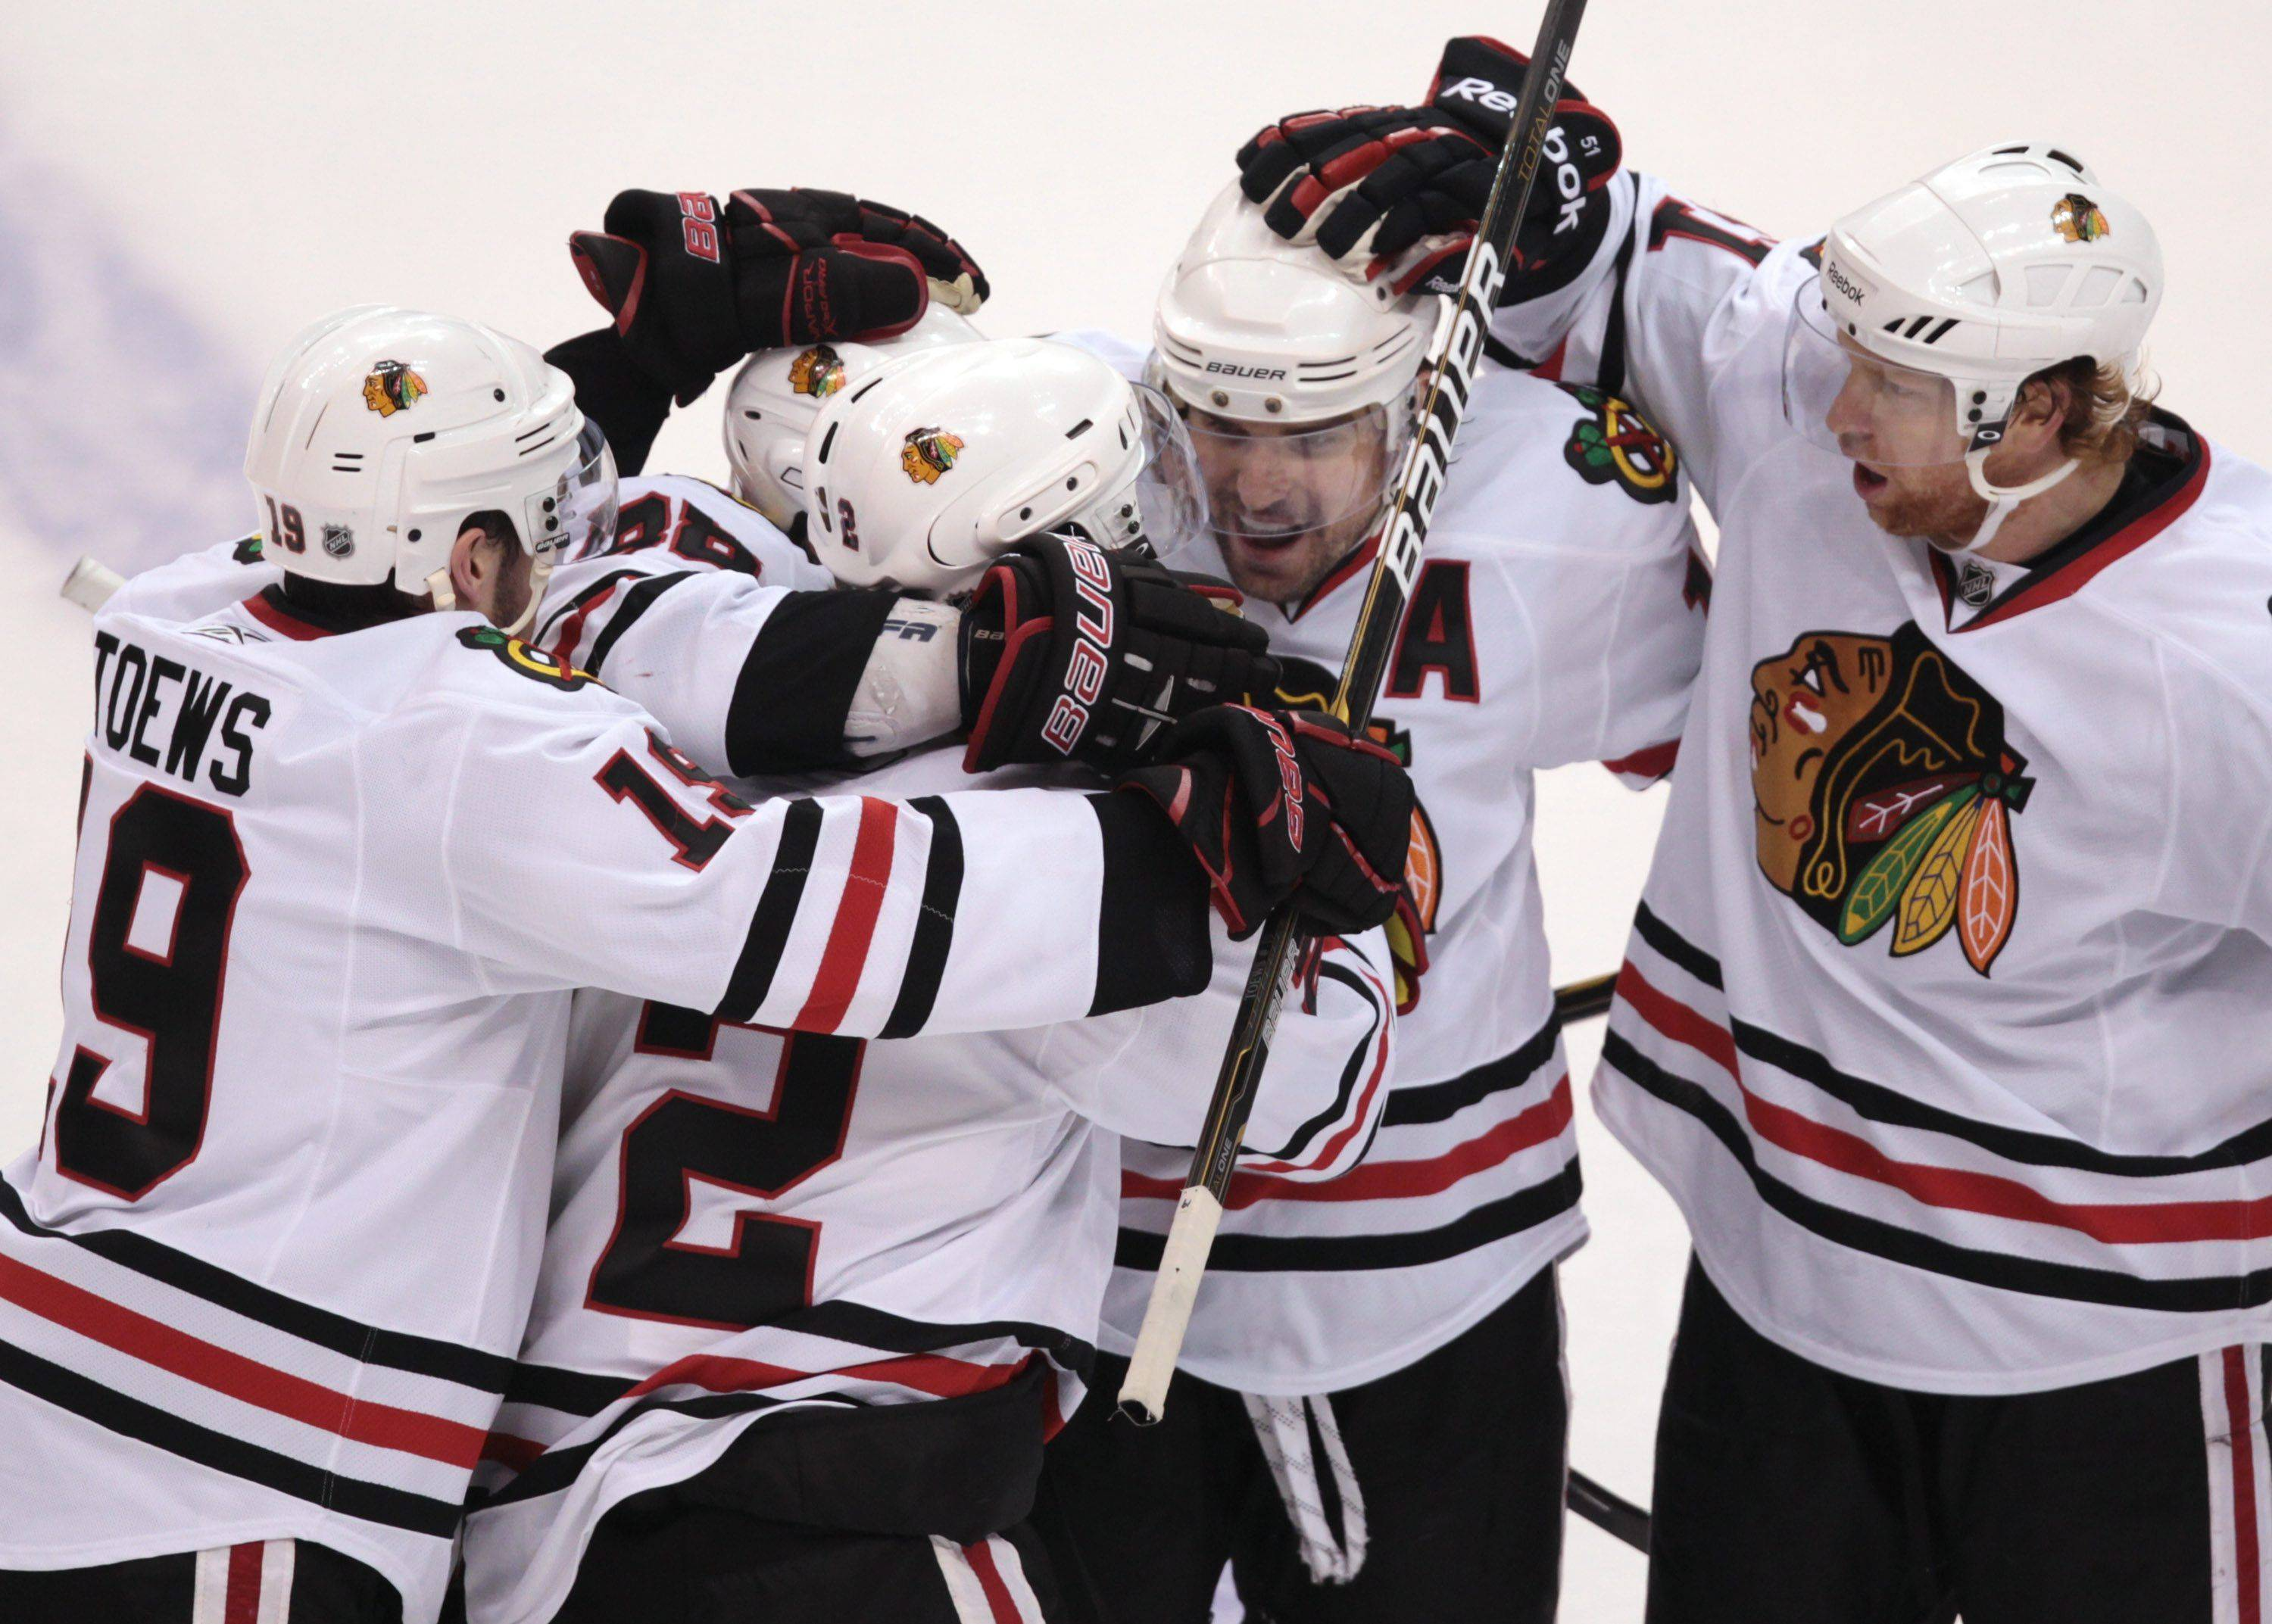 Keith, Campbell bring Hawks back to life